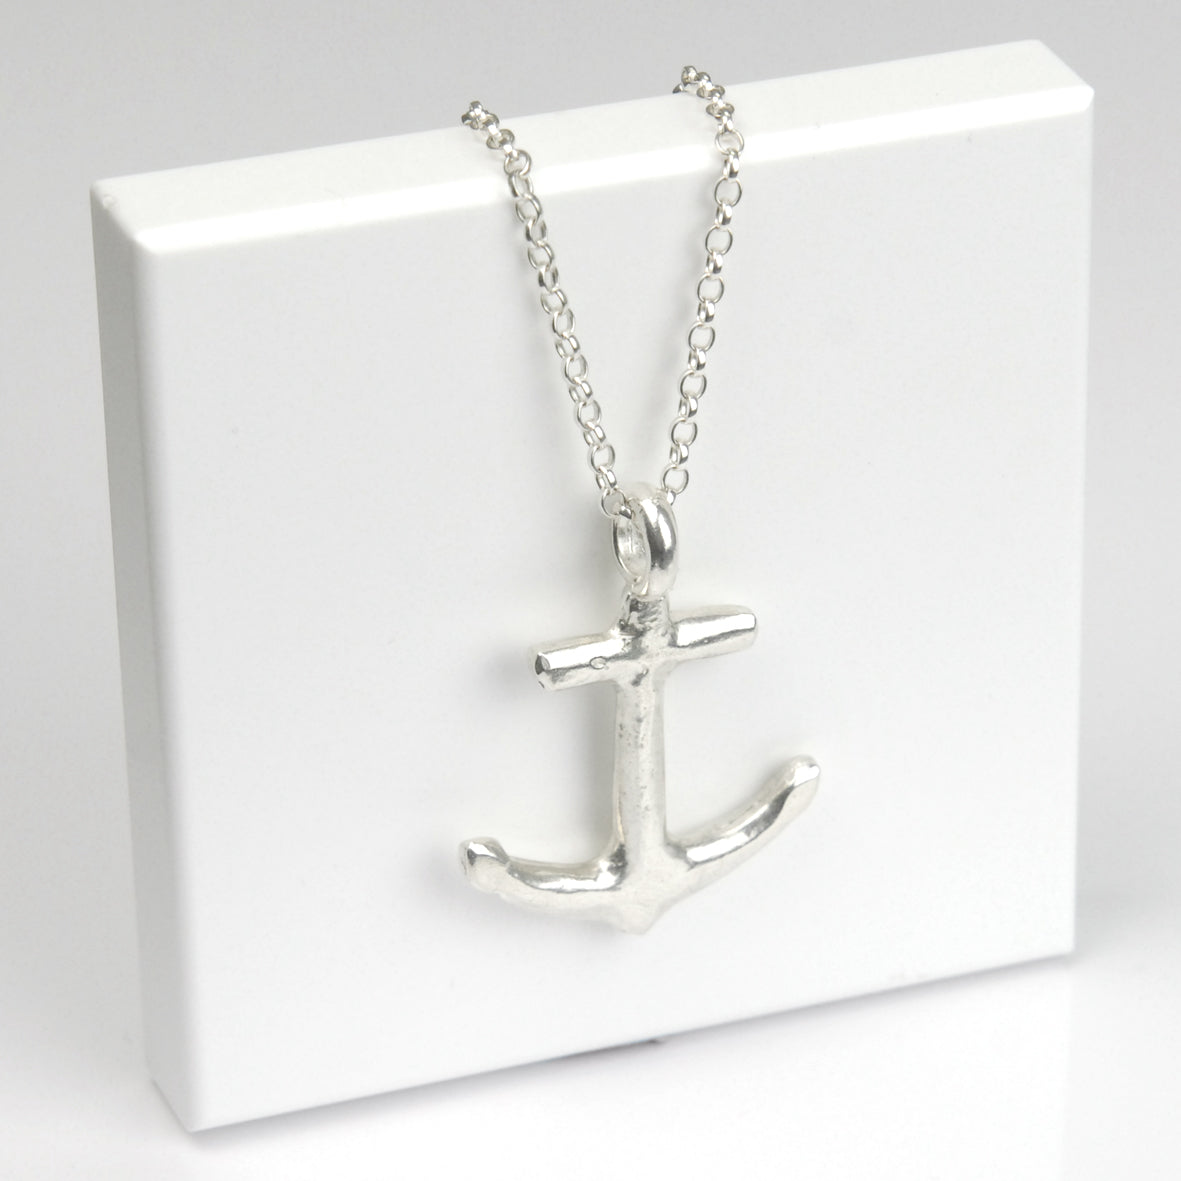 Belcher Chain with Large Chunky Anchor Charm